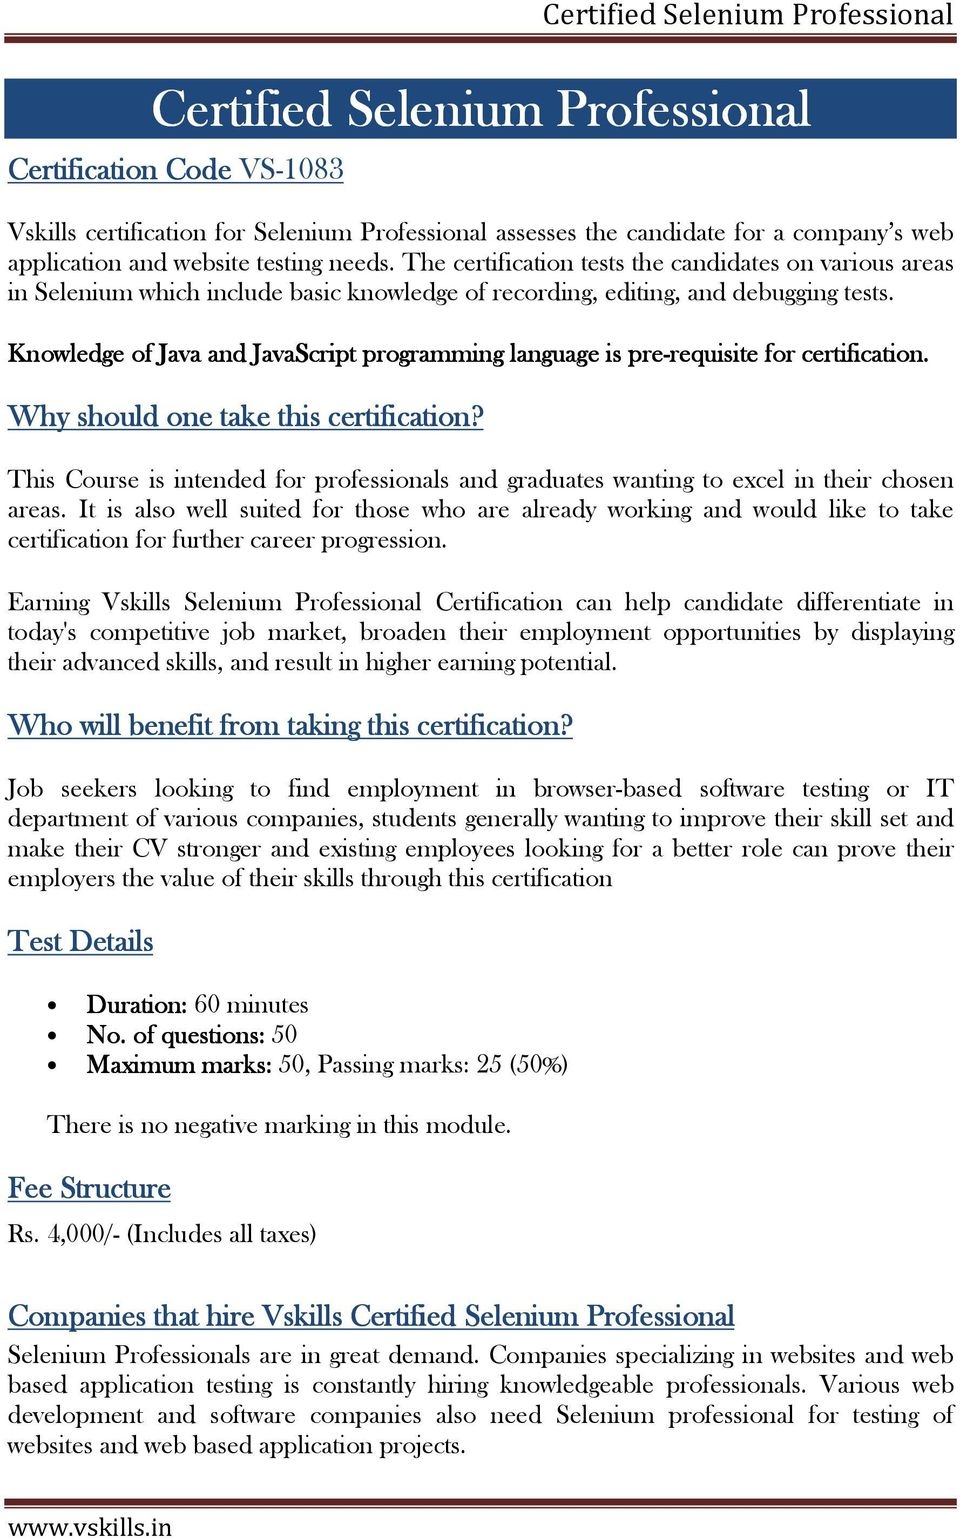 Knowledge of Java and JavaScript programming language is pre-requisite requisite for certification. Why should one take this certification?